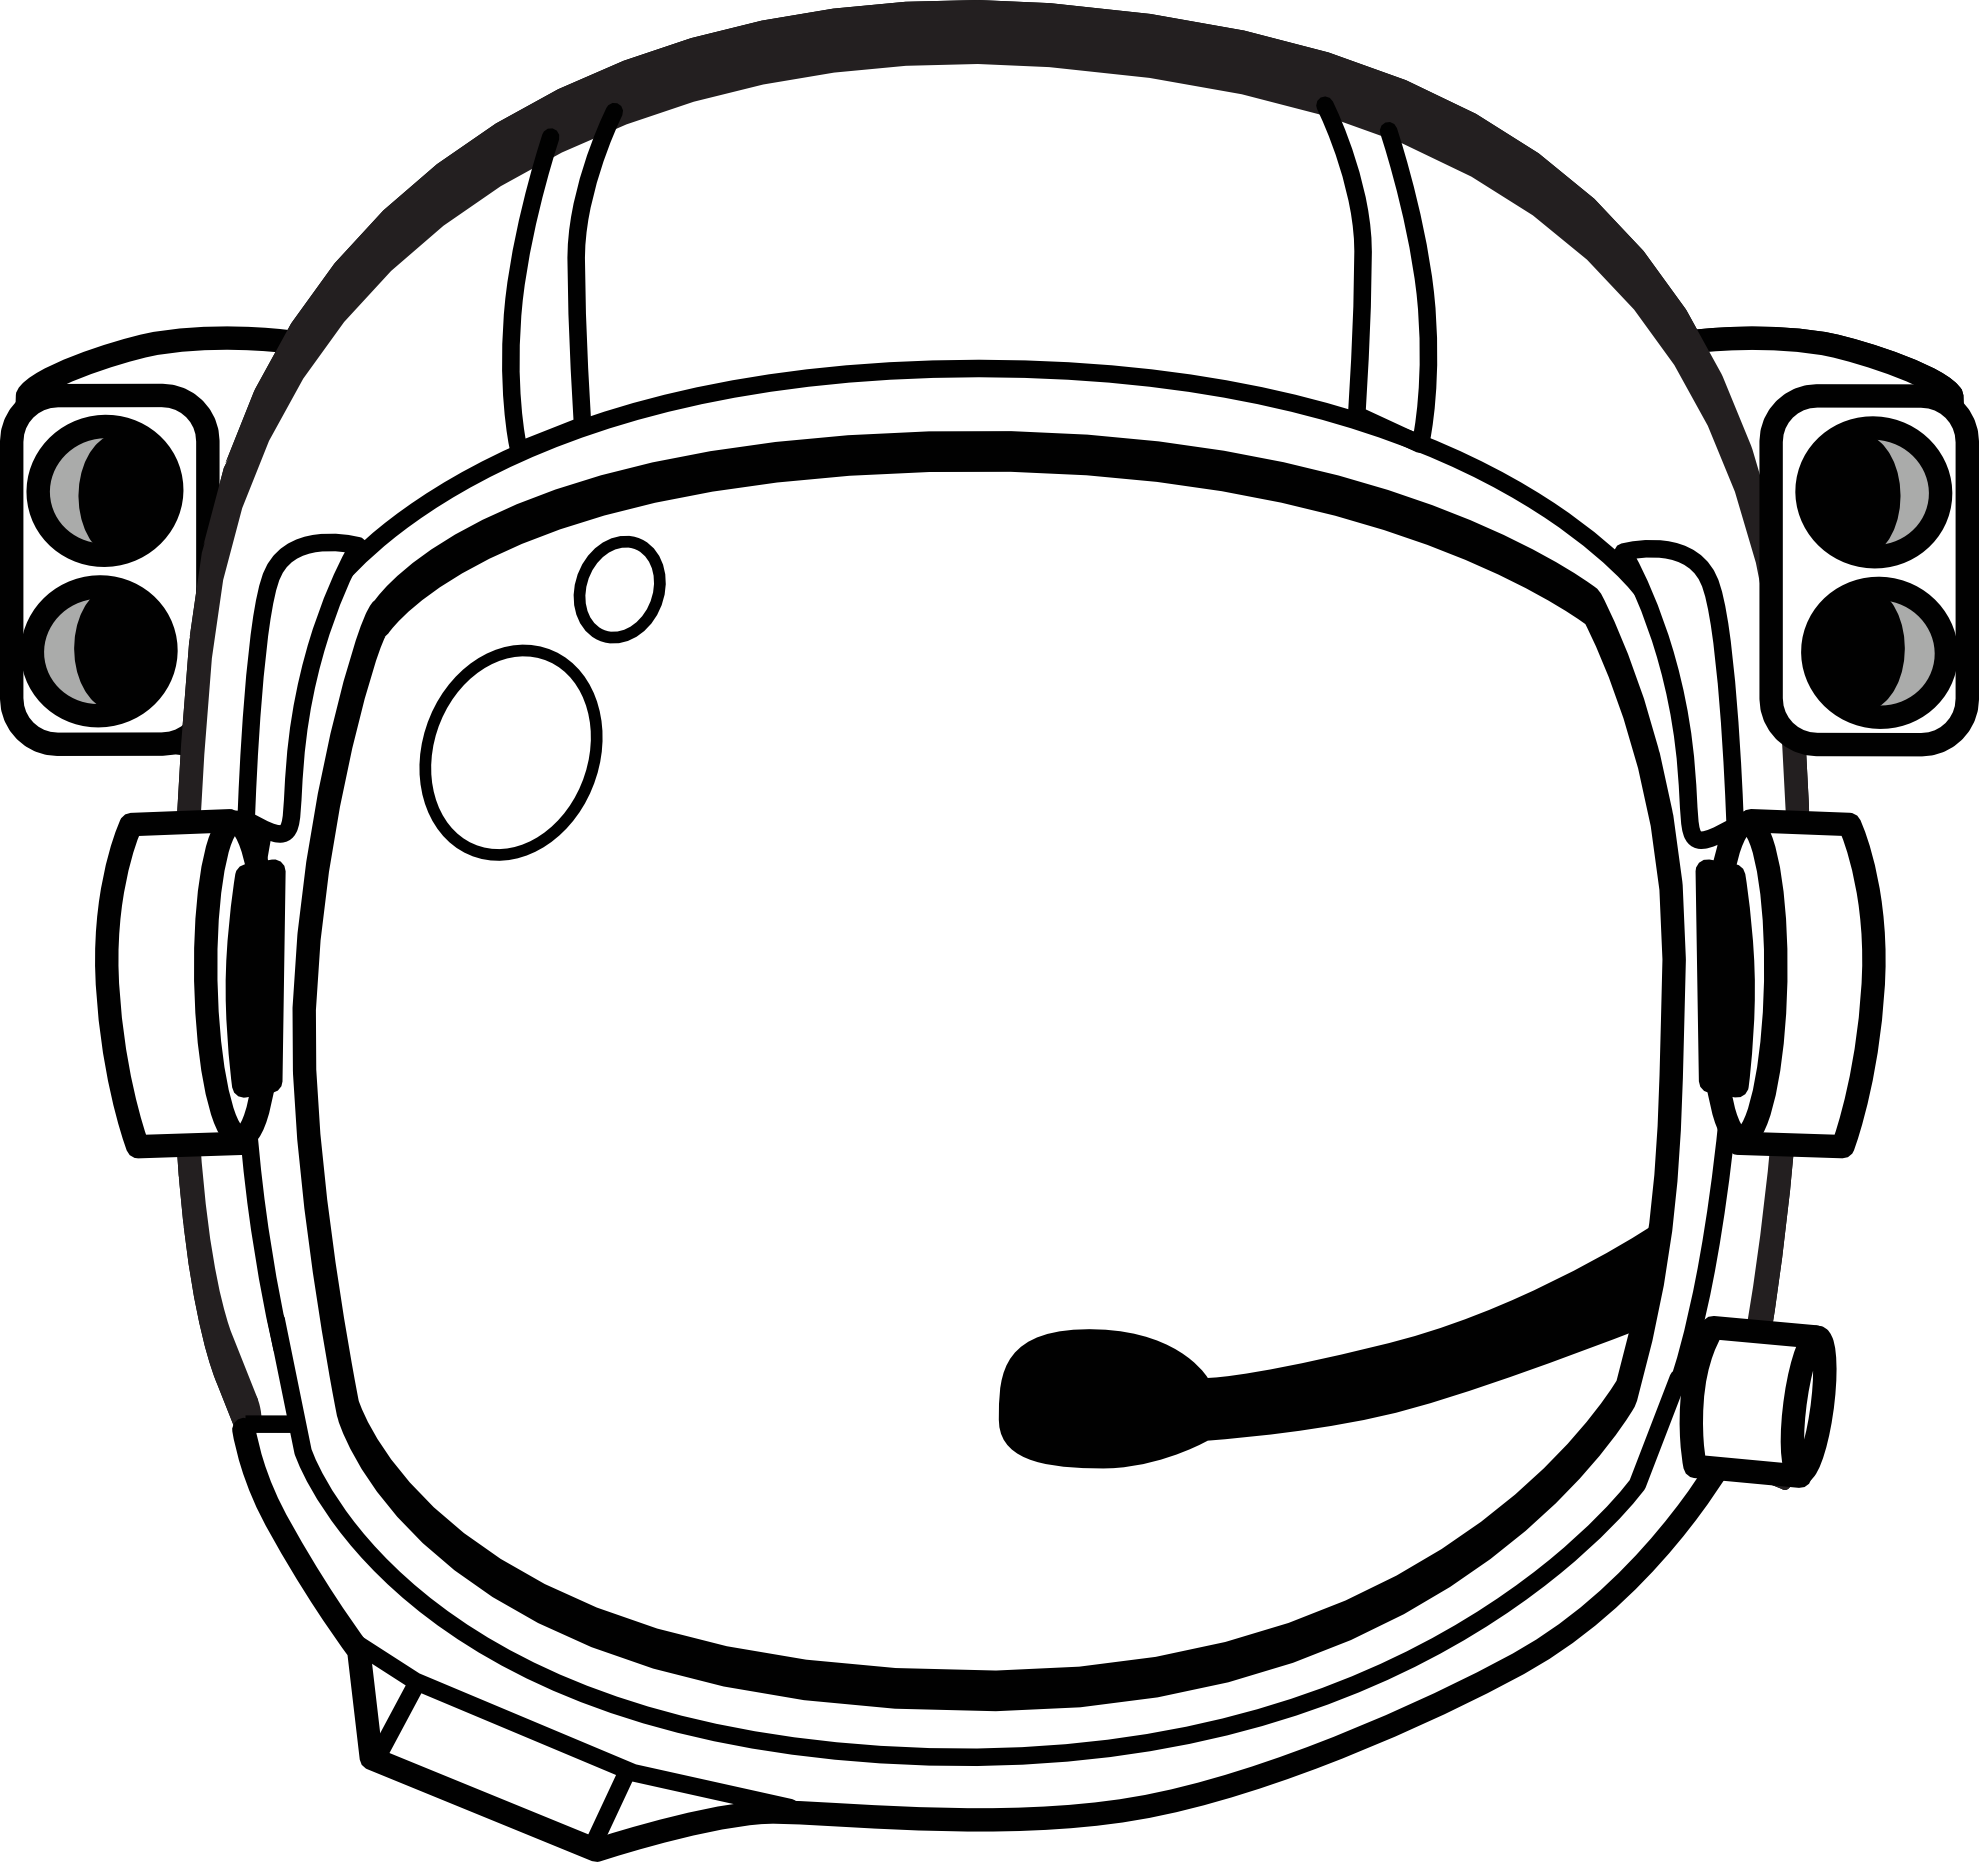 Football helmet black and. Planet clipart space party